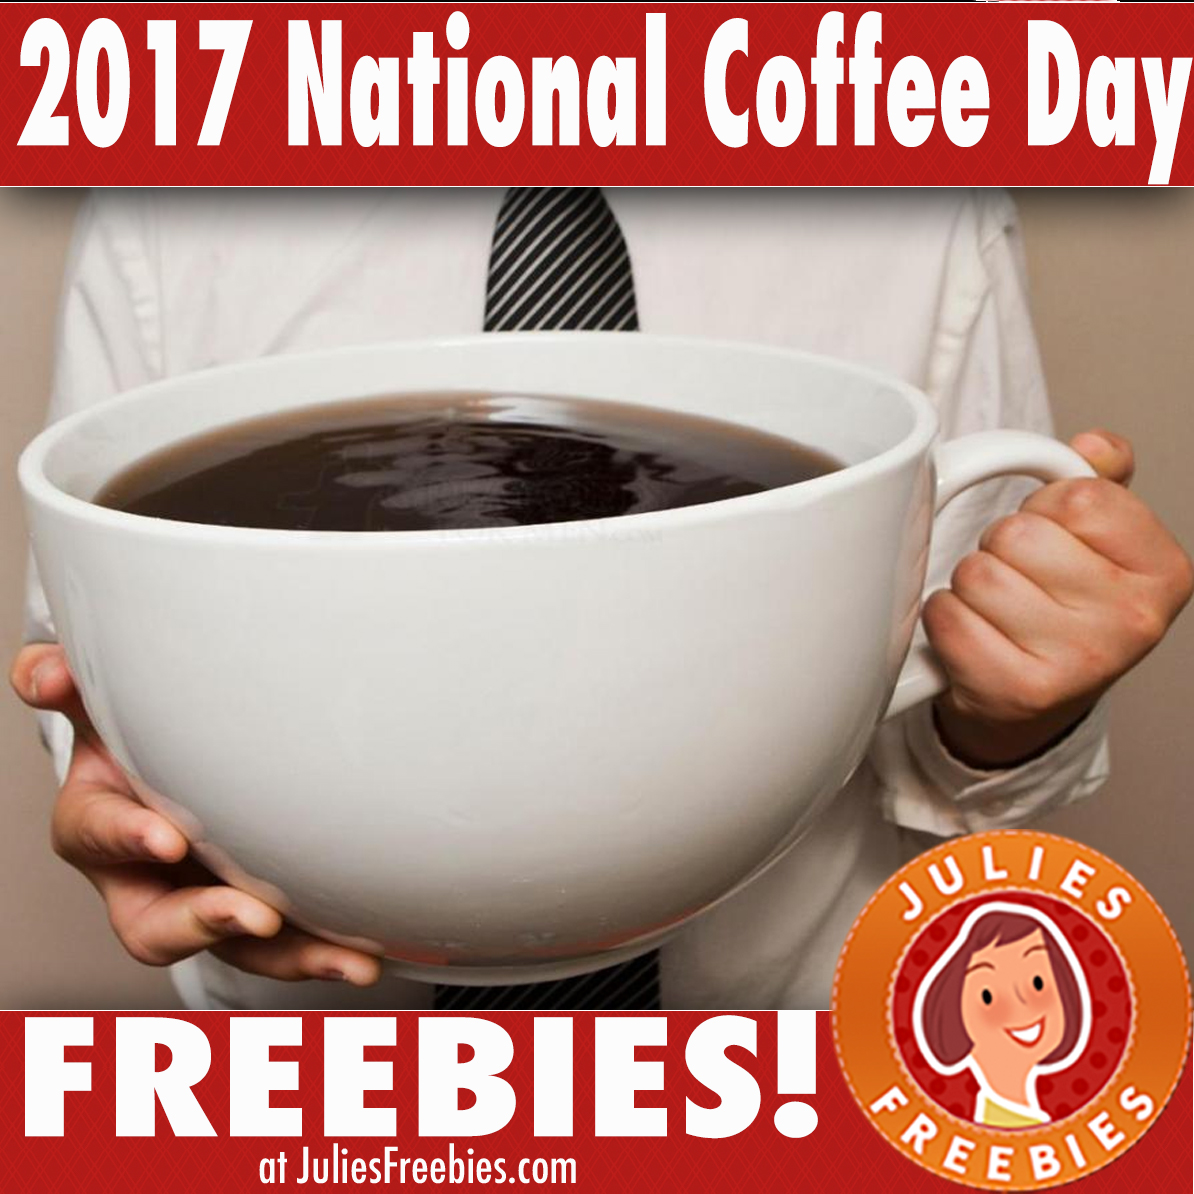 In Celebration Of National Coffee Day Several Places Are Offering Free Cups Or Great Deals Click The Separate Links For Details From